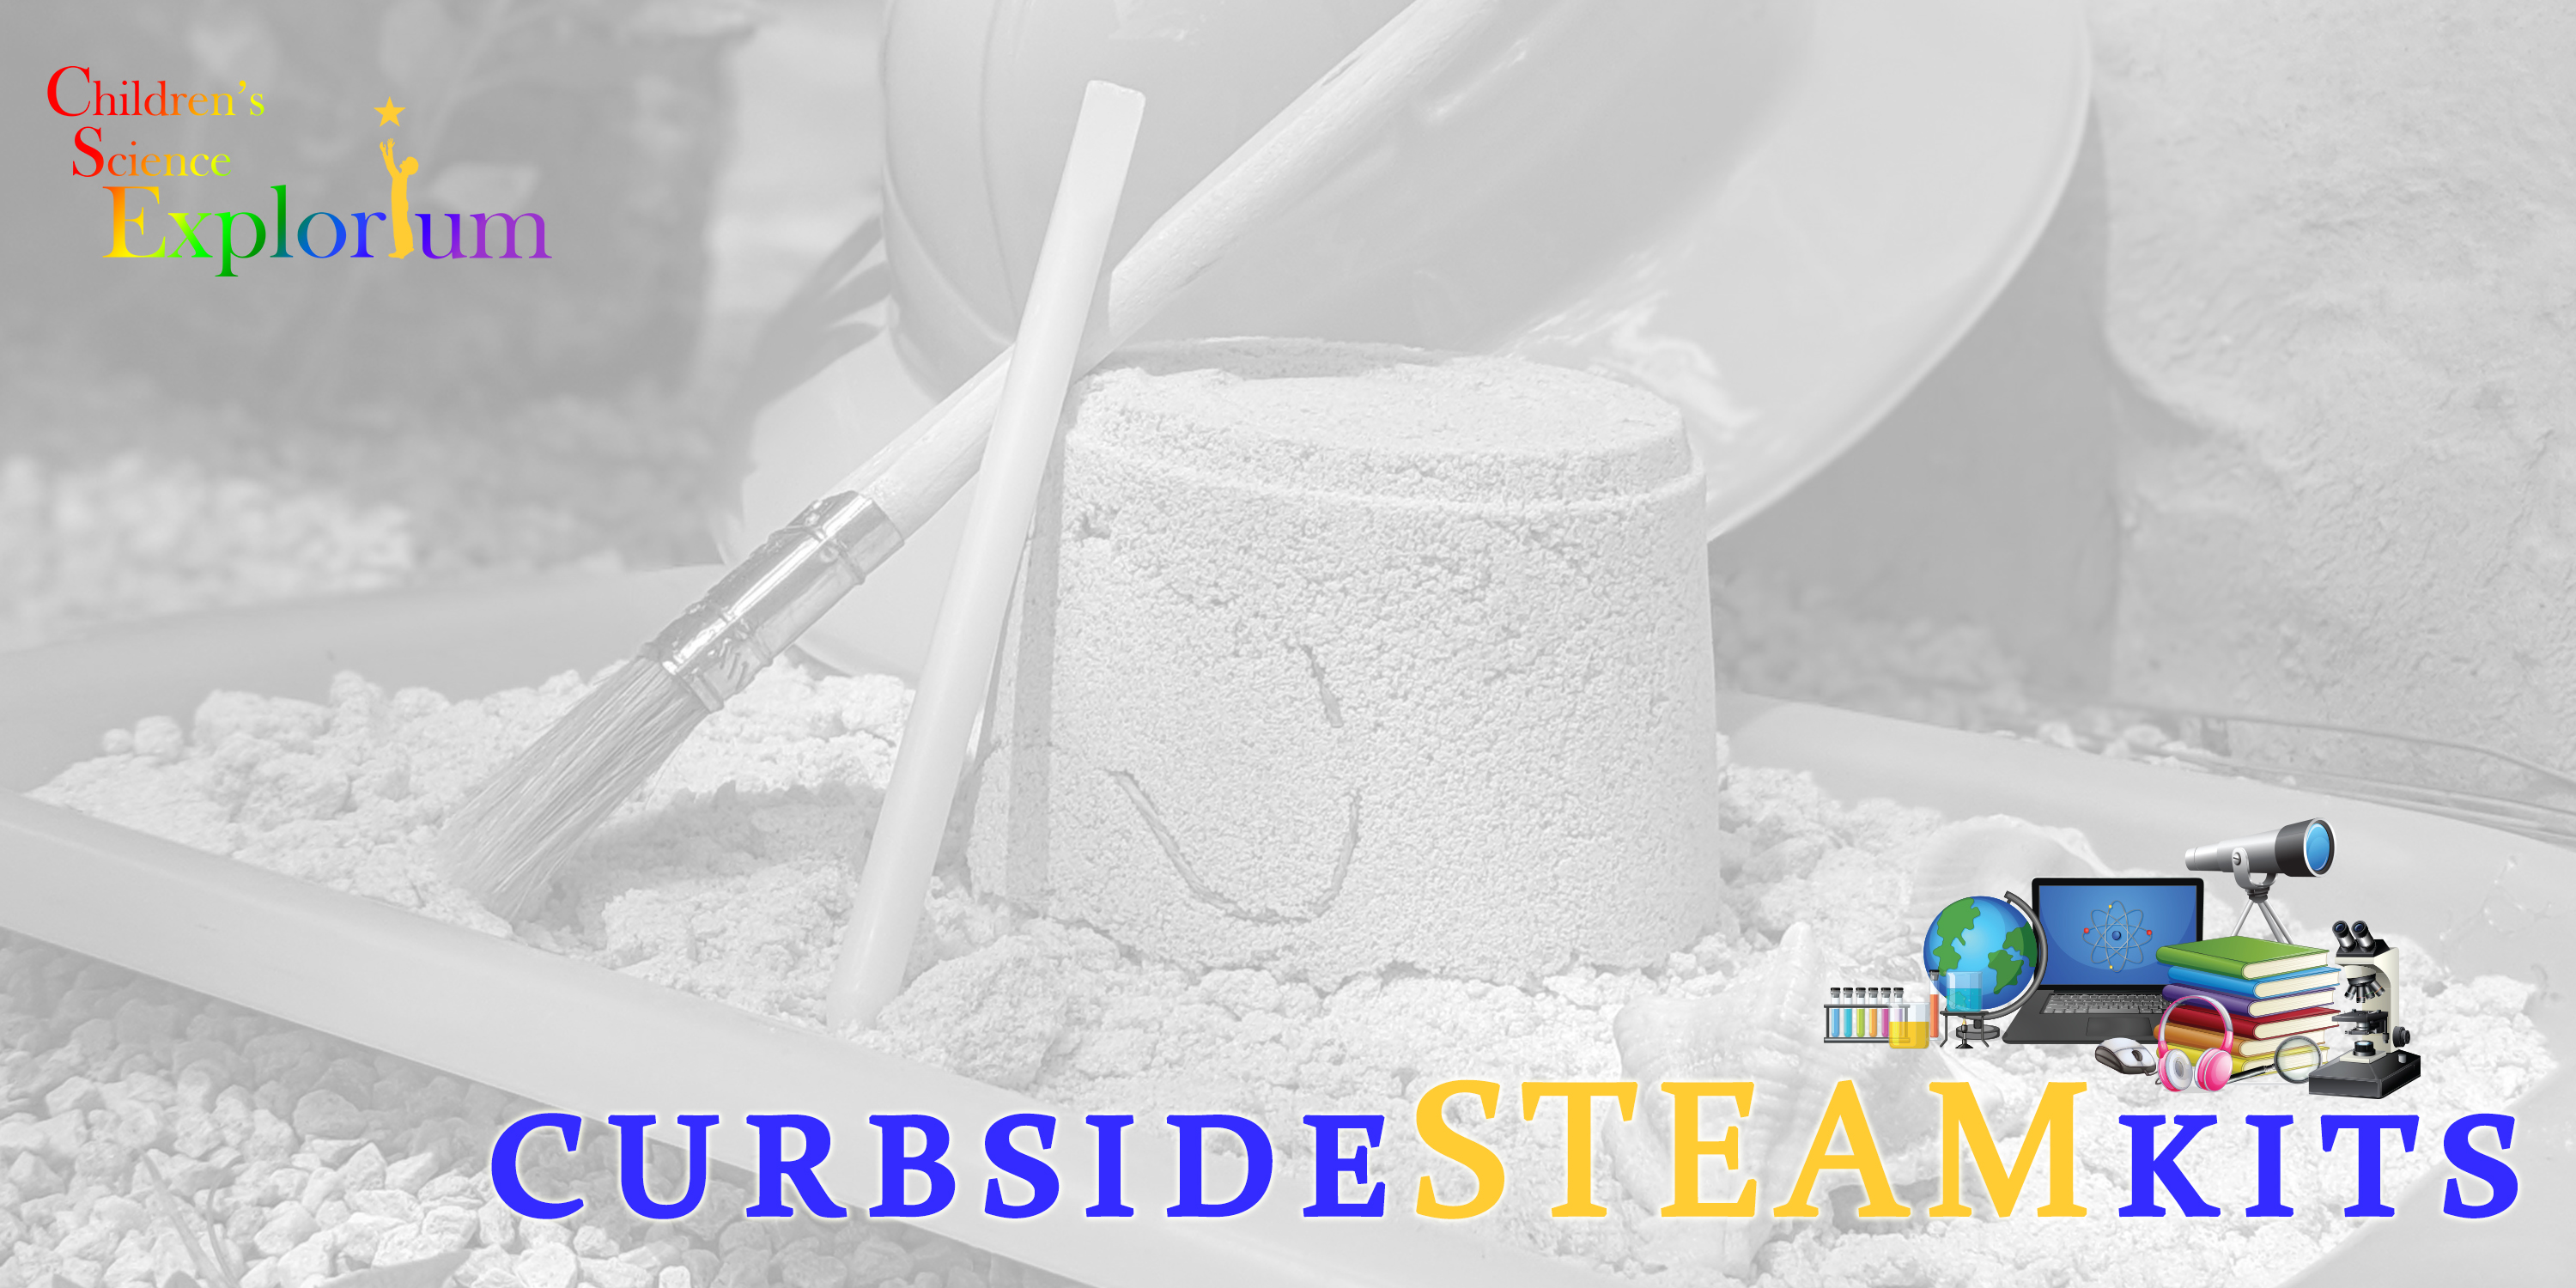 Curbside STEAM